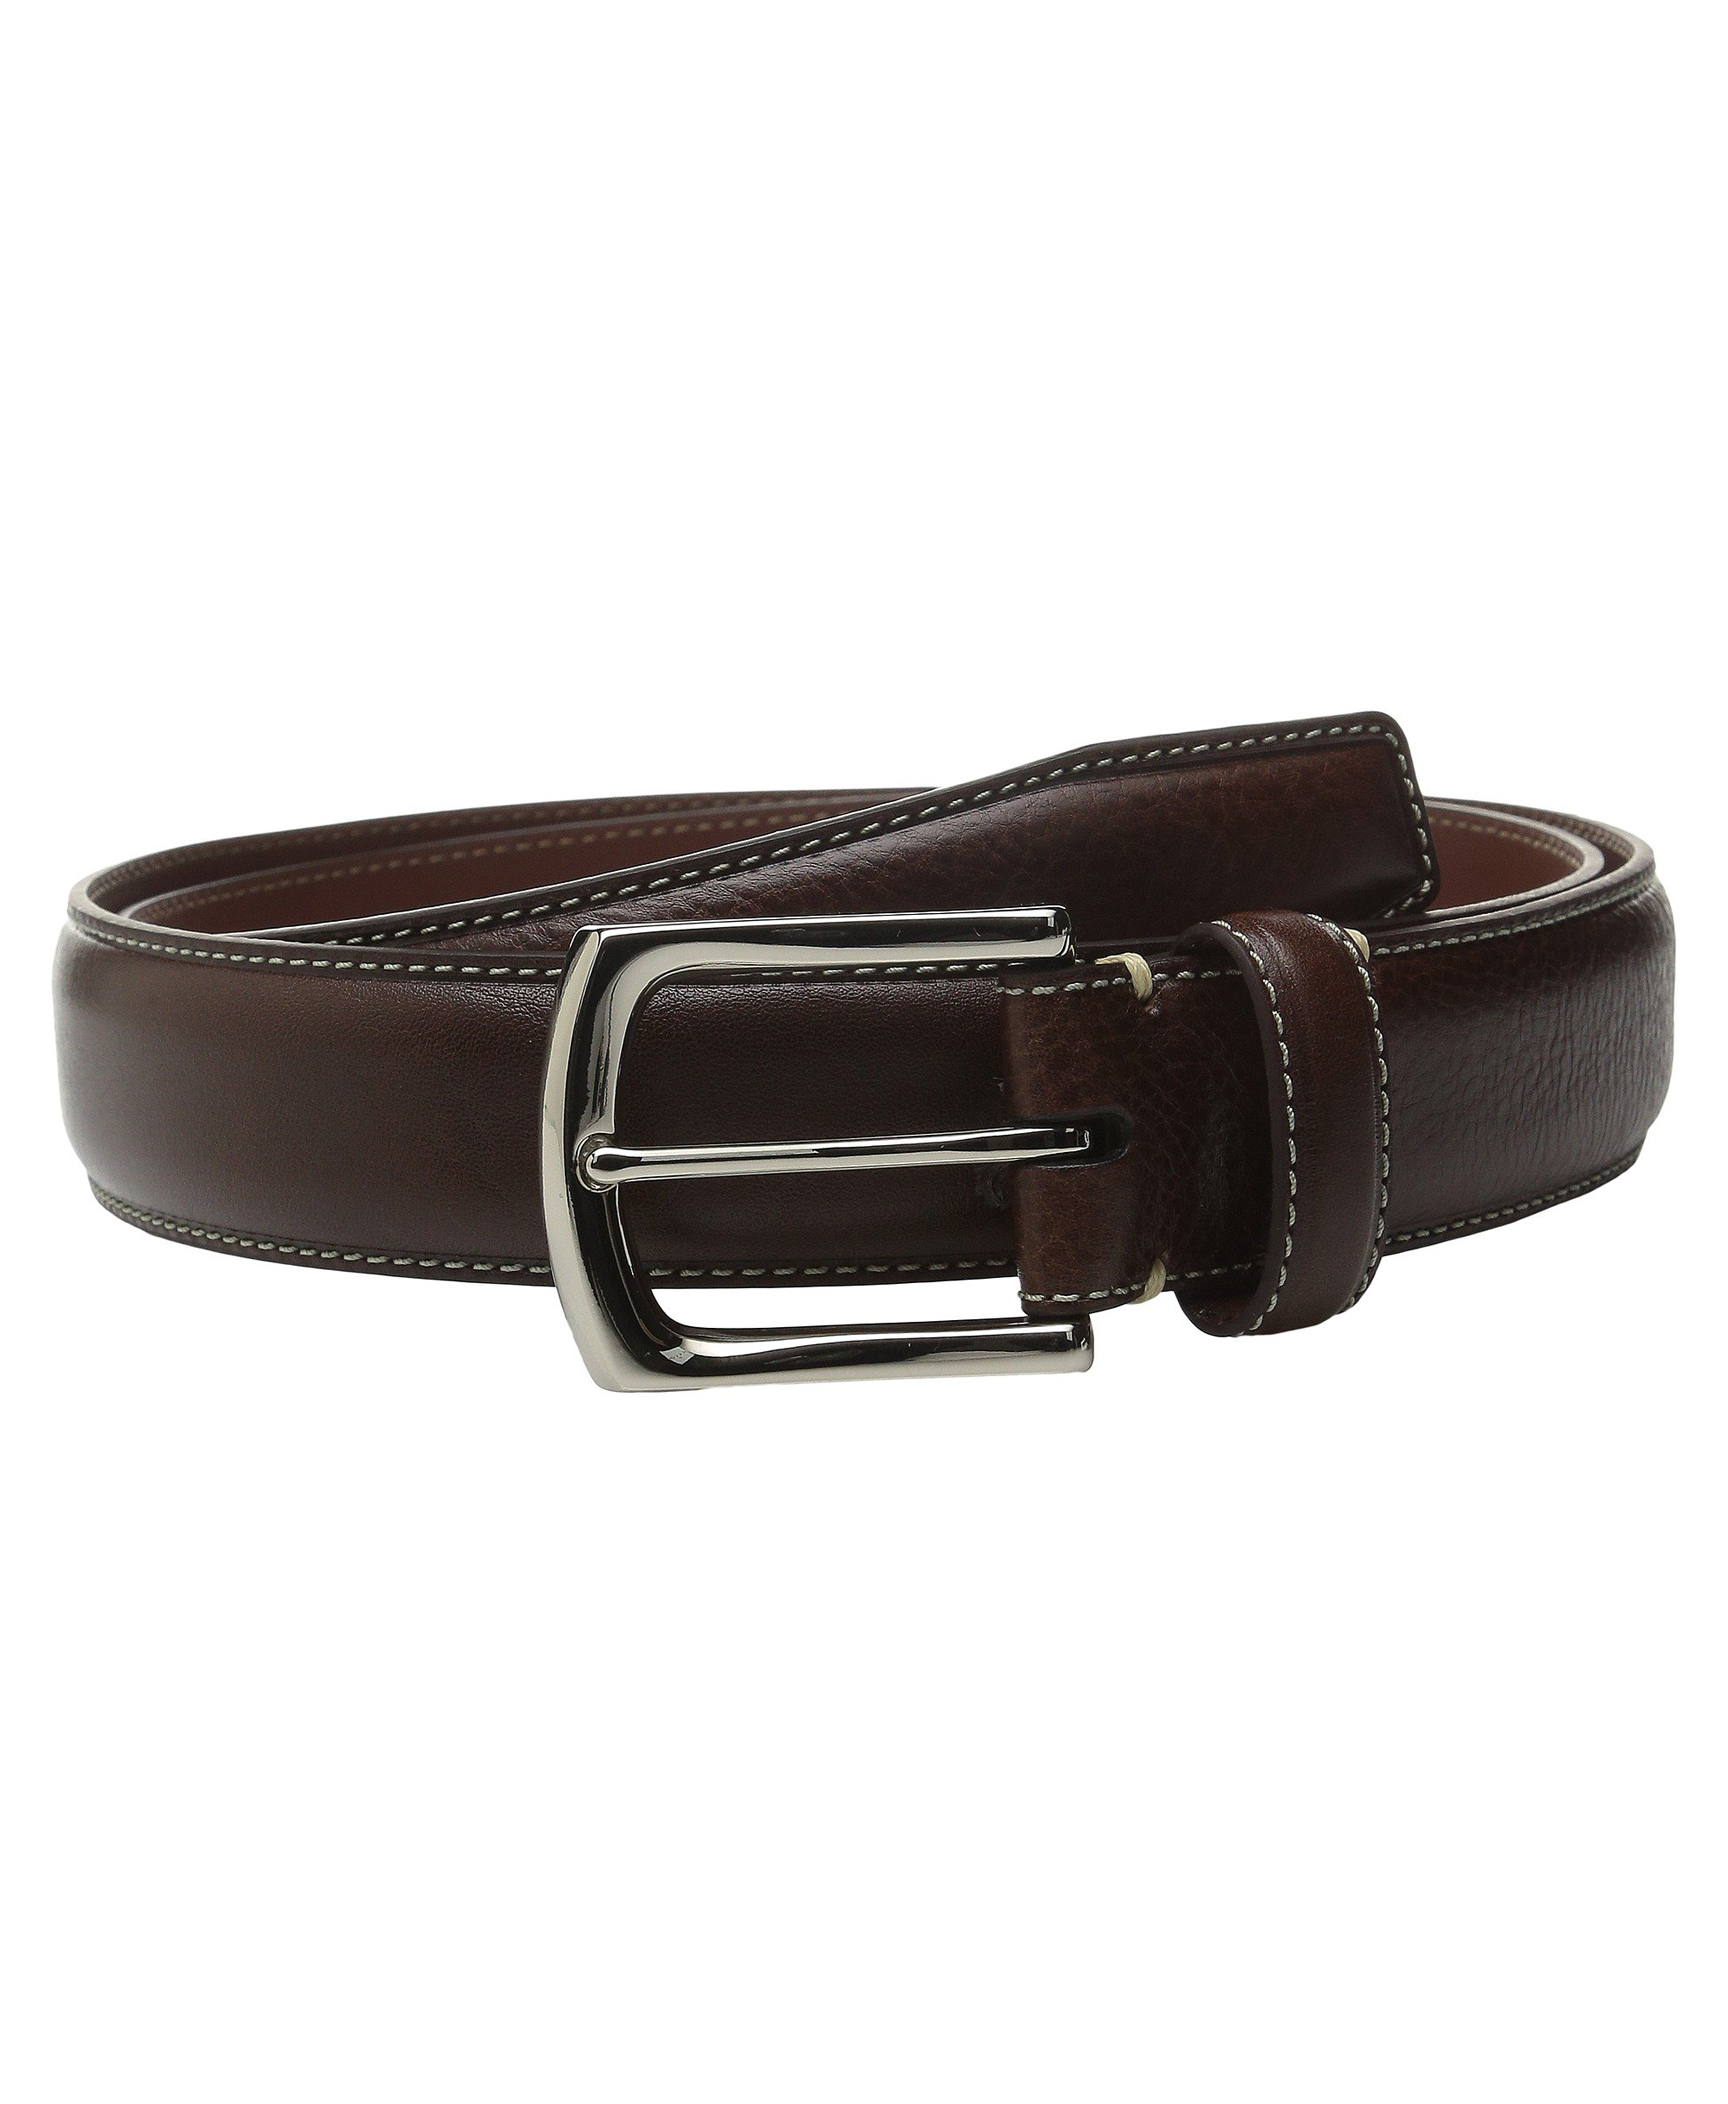 Torino leather belt